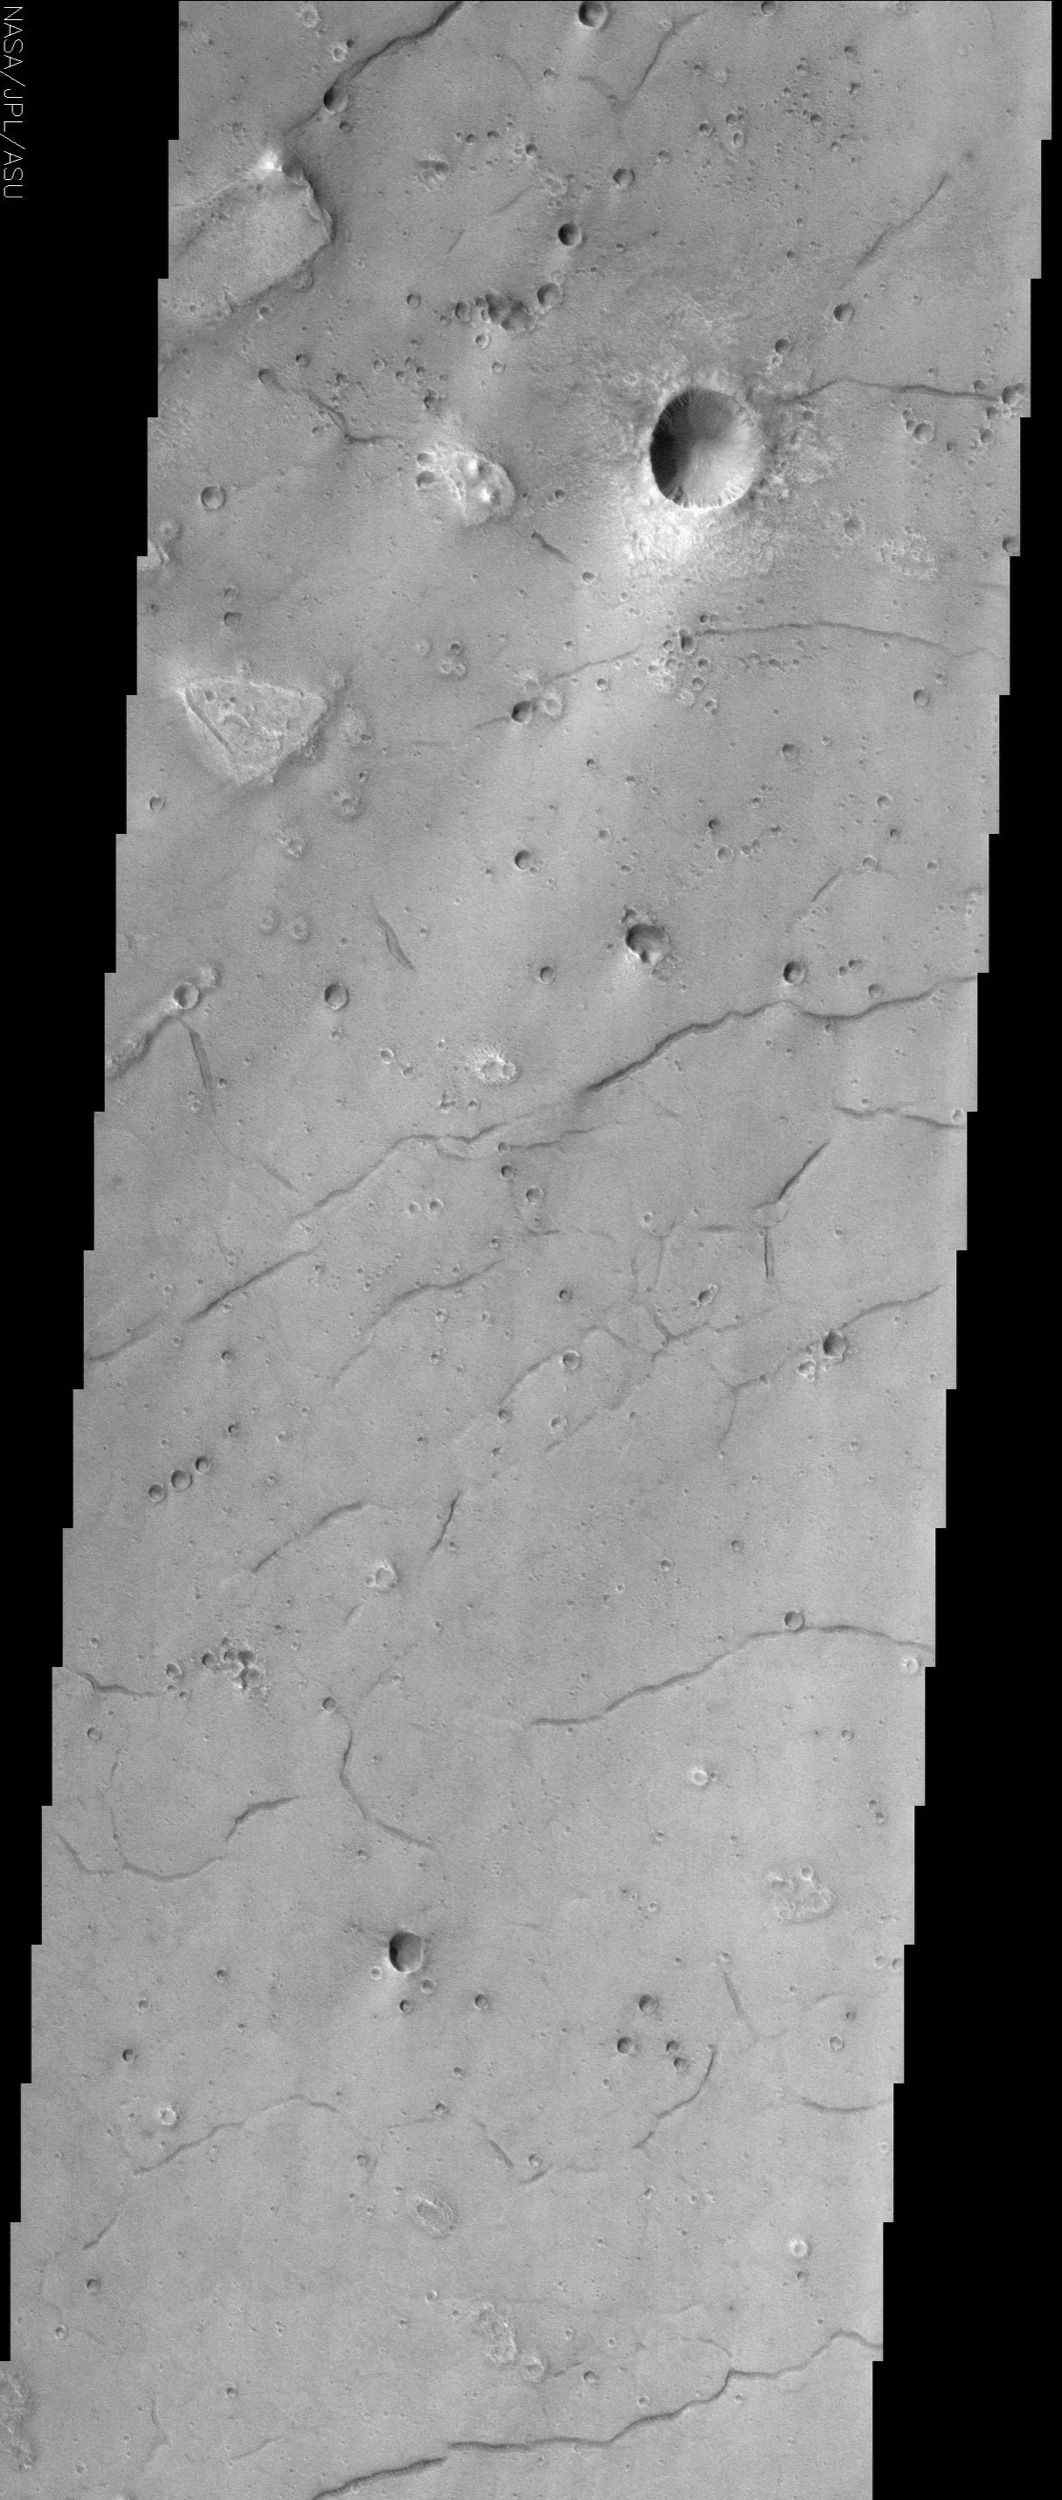 The lineations seen in this NASA Mars Odyssey image occur in Acidalia Planitia. These fissures, or cracks in the ground, are possibly evidence that there was once subsurface ice or water in the region.